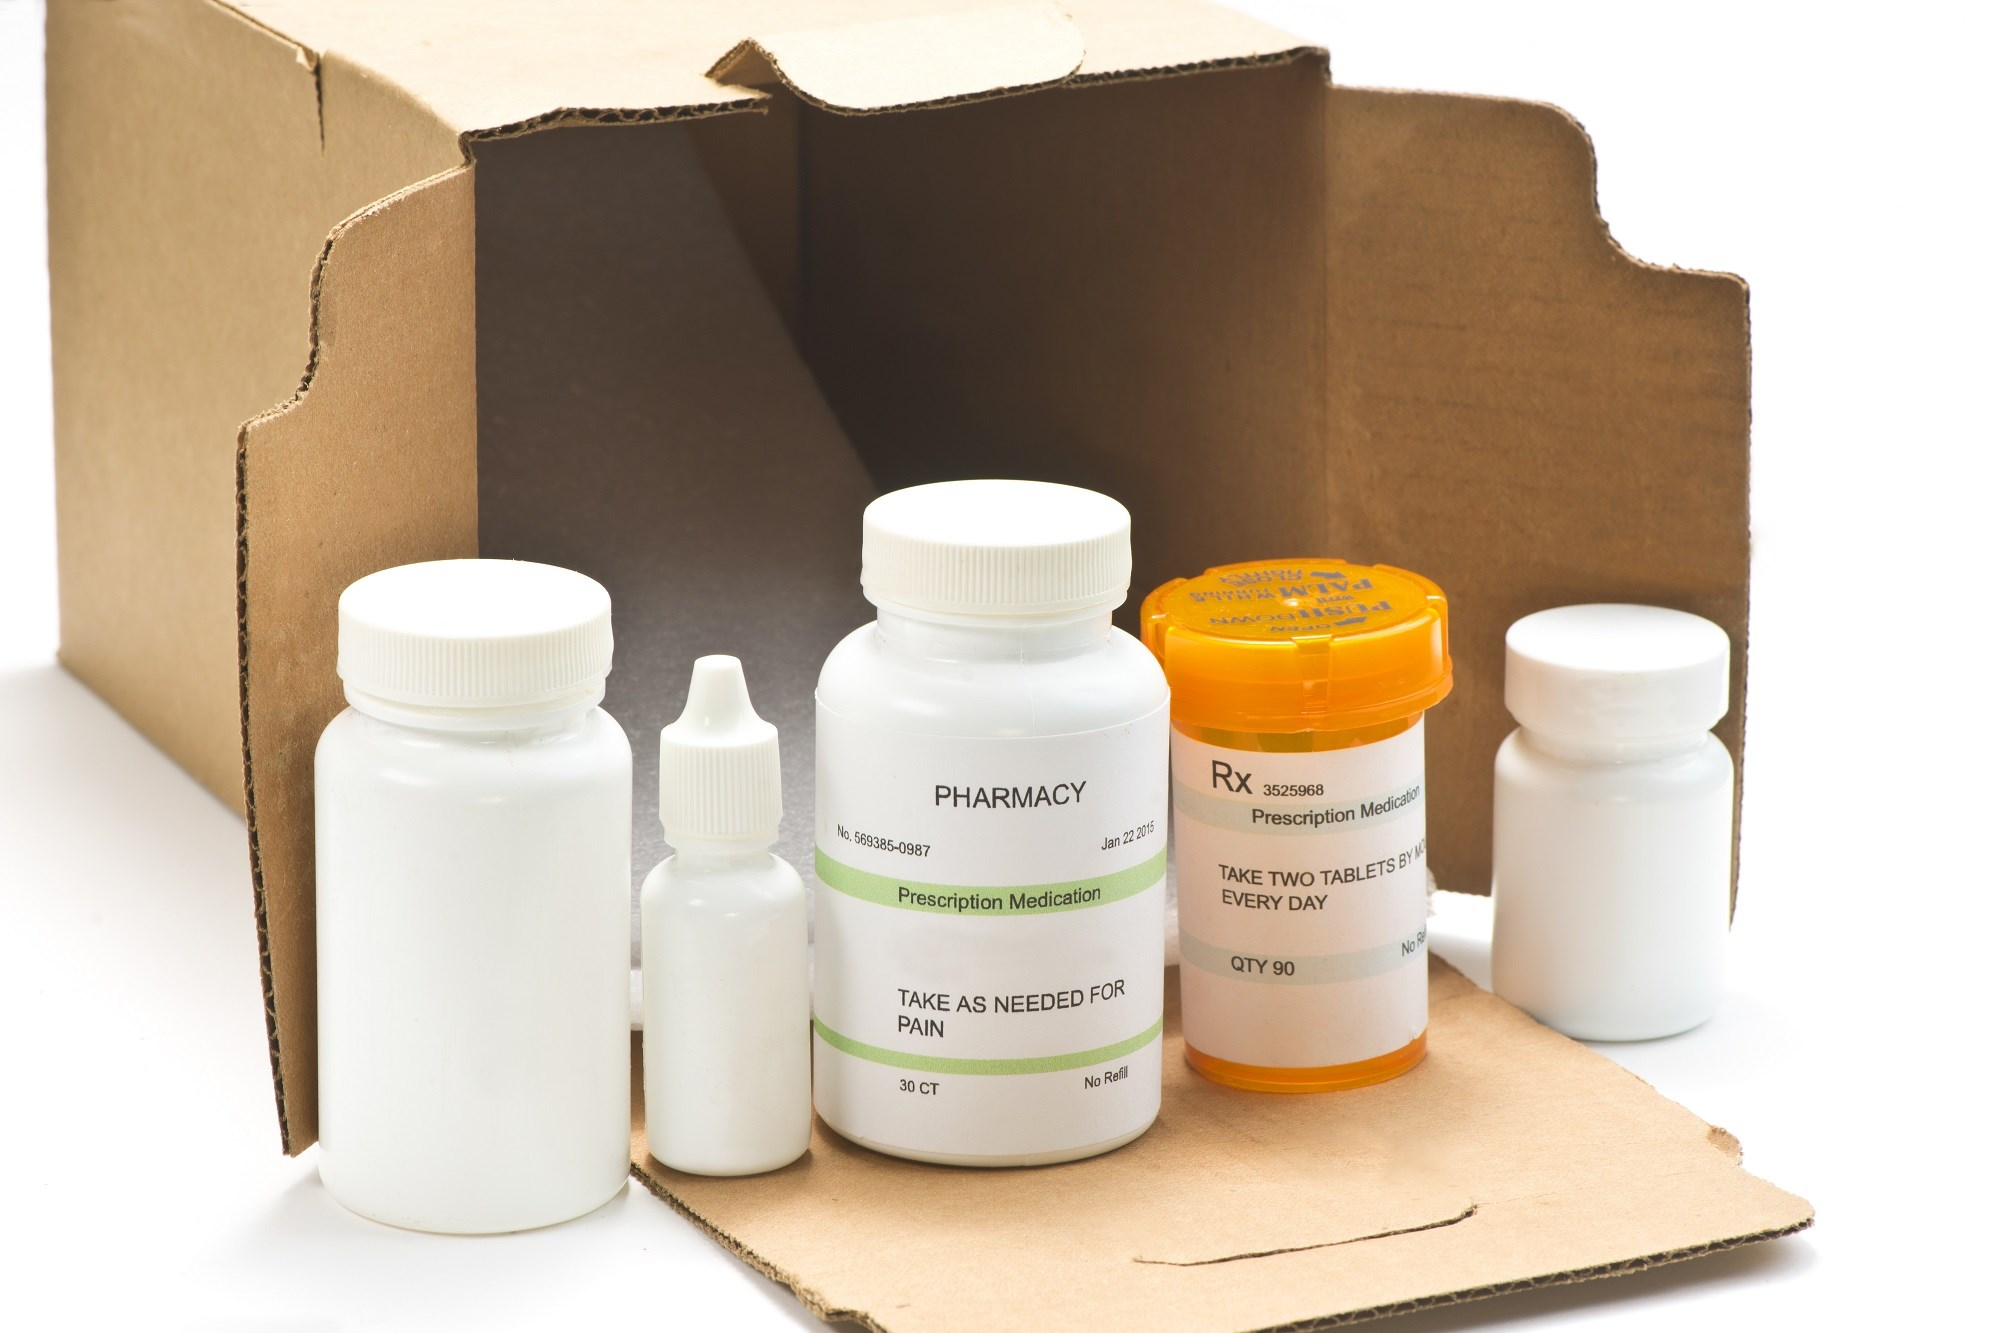 Walgreens Now Offers Next-Day Prescription Medication Delivery With FedEx